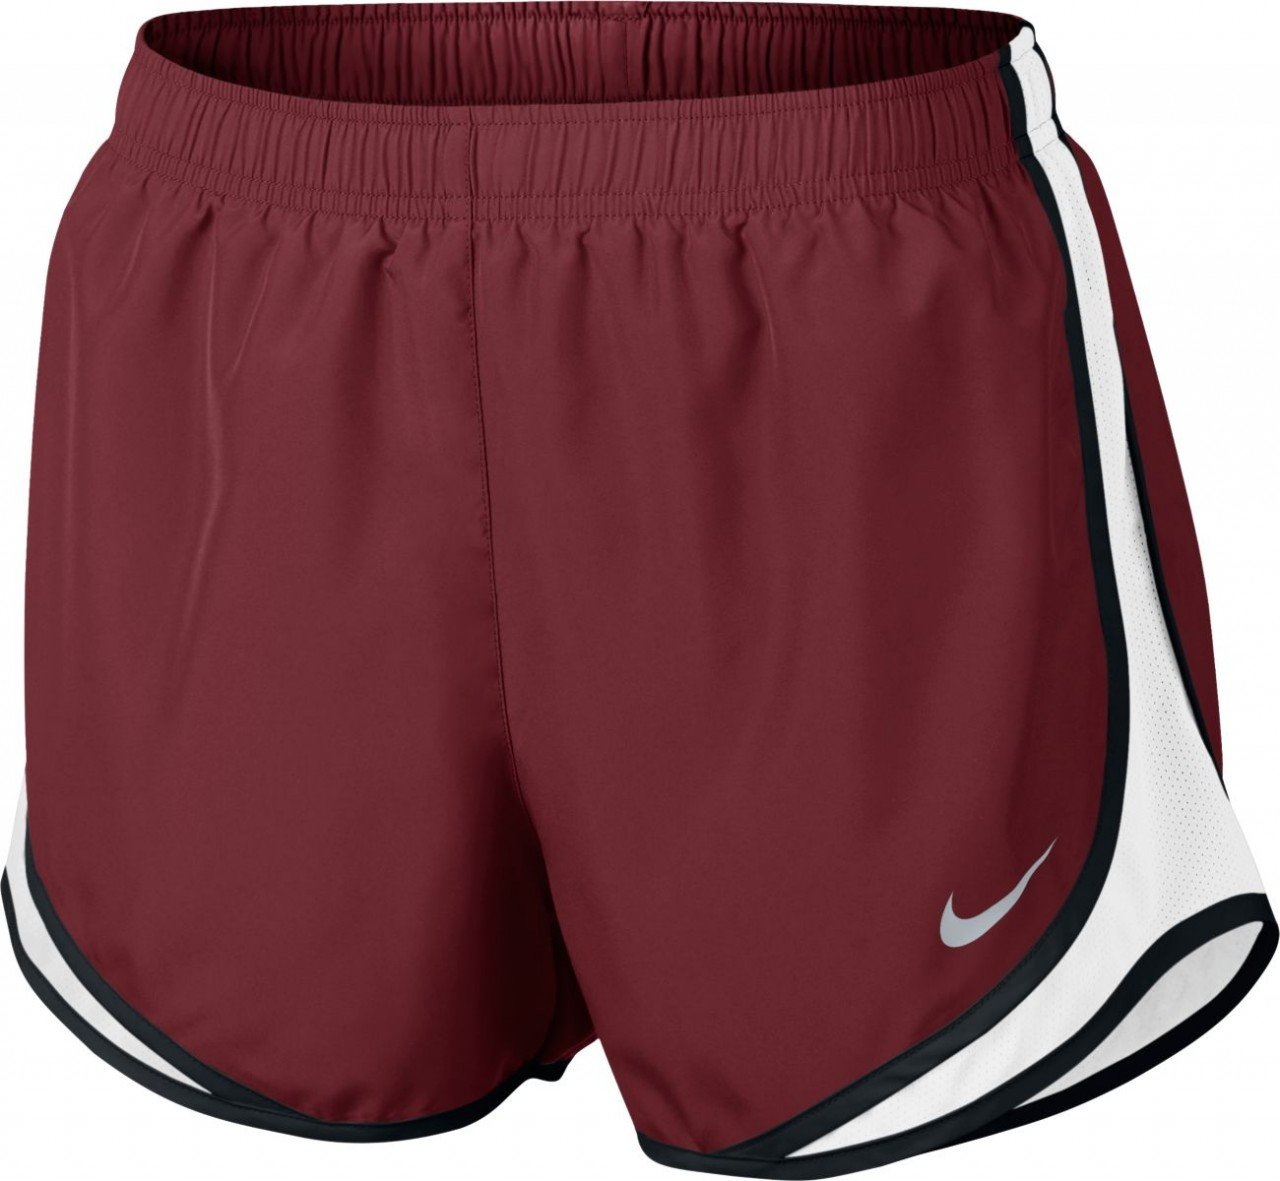 NIKE Dry Fit Tempo Shorts (Black/Team Red & White, M) by Nike